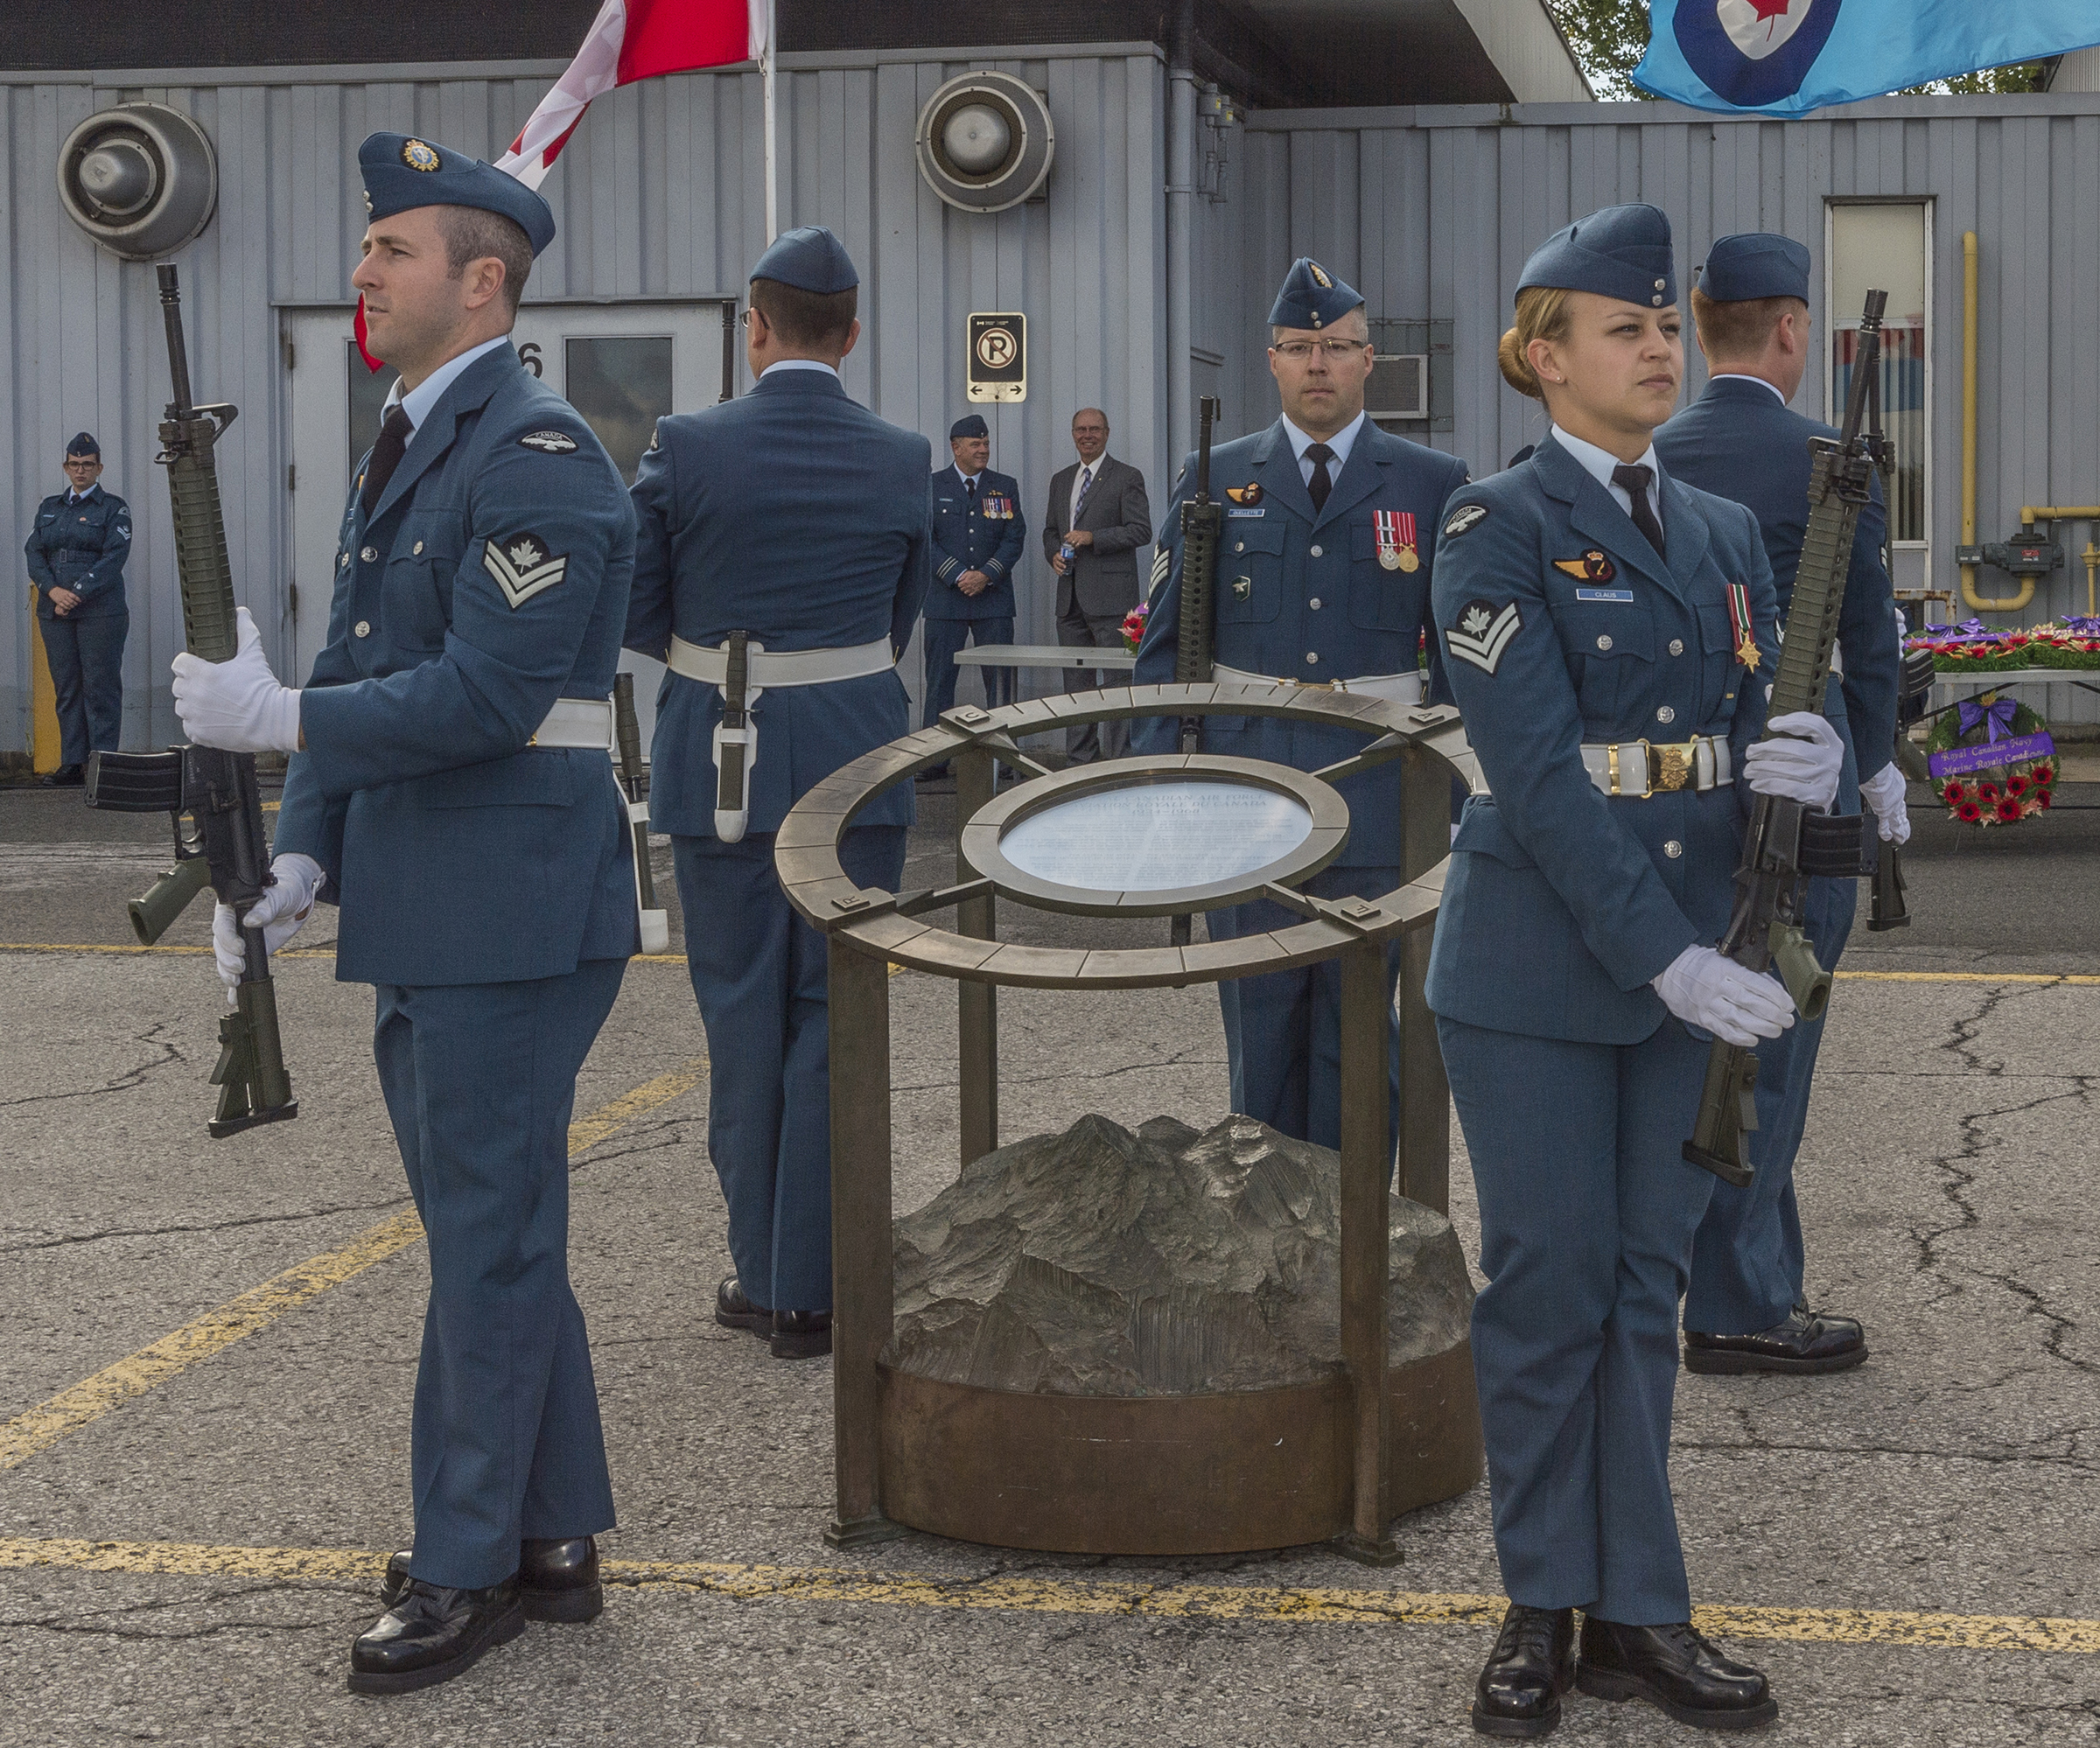 Members of the Royal Canadian Air Force present arms during their vigil at the RCAF cenotaph during the national Battle of Britain ceremony held Sunday, September 18, 2016, at the Canada Aviation and Space Museum in Ottawa. From left to right: Master Corporal Maxime Fournier, Master Corporal Donald Lickers, Sergeant Marc Ouellette, sentry commander, Master Corporal Louis Seguin, and Master Corporal Amanda Claus. PHOTO: Corporal Alana Morin, FA03-2016-0032-010